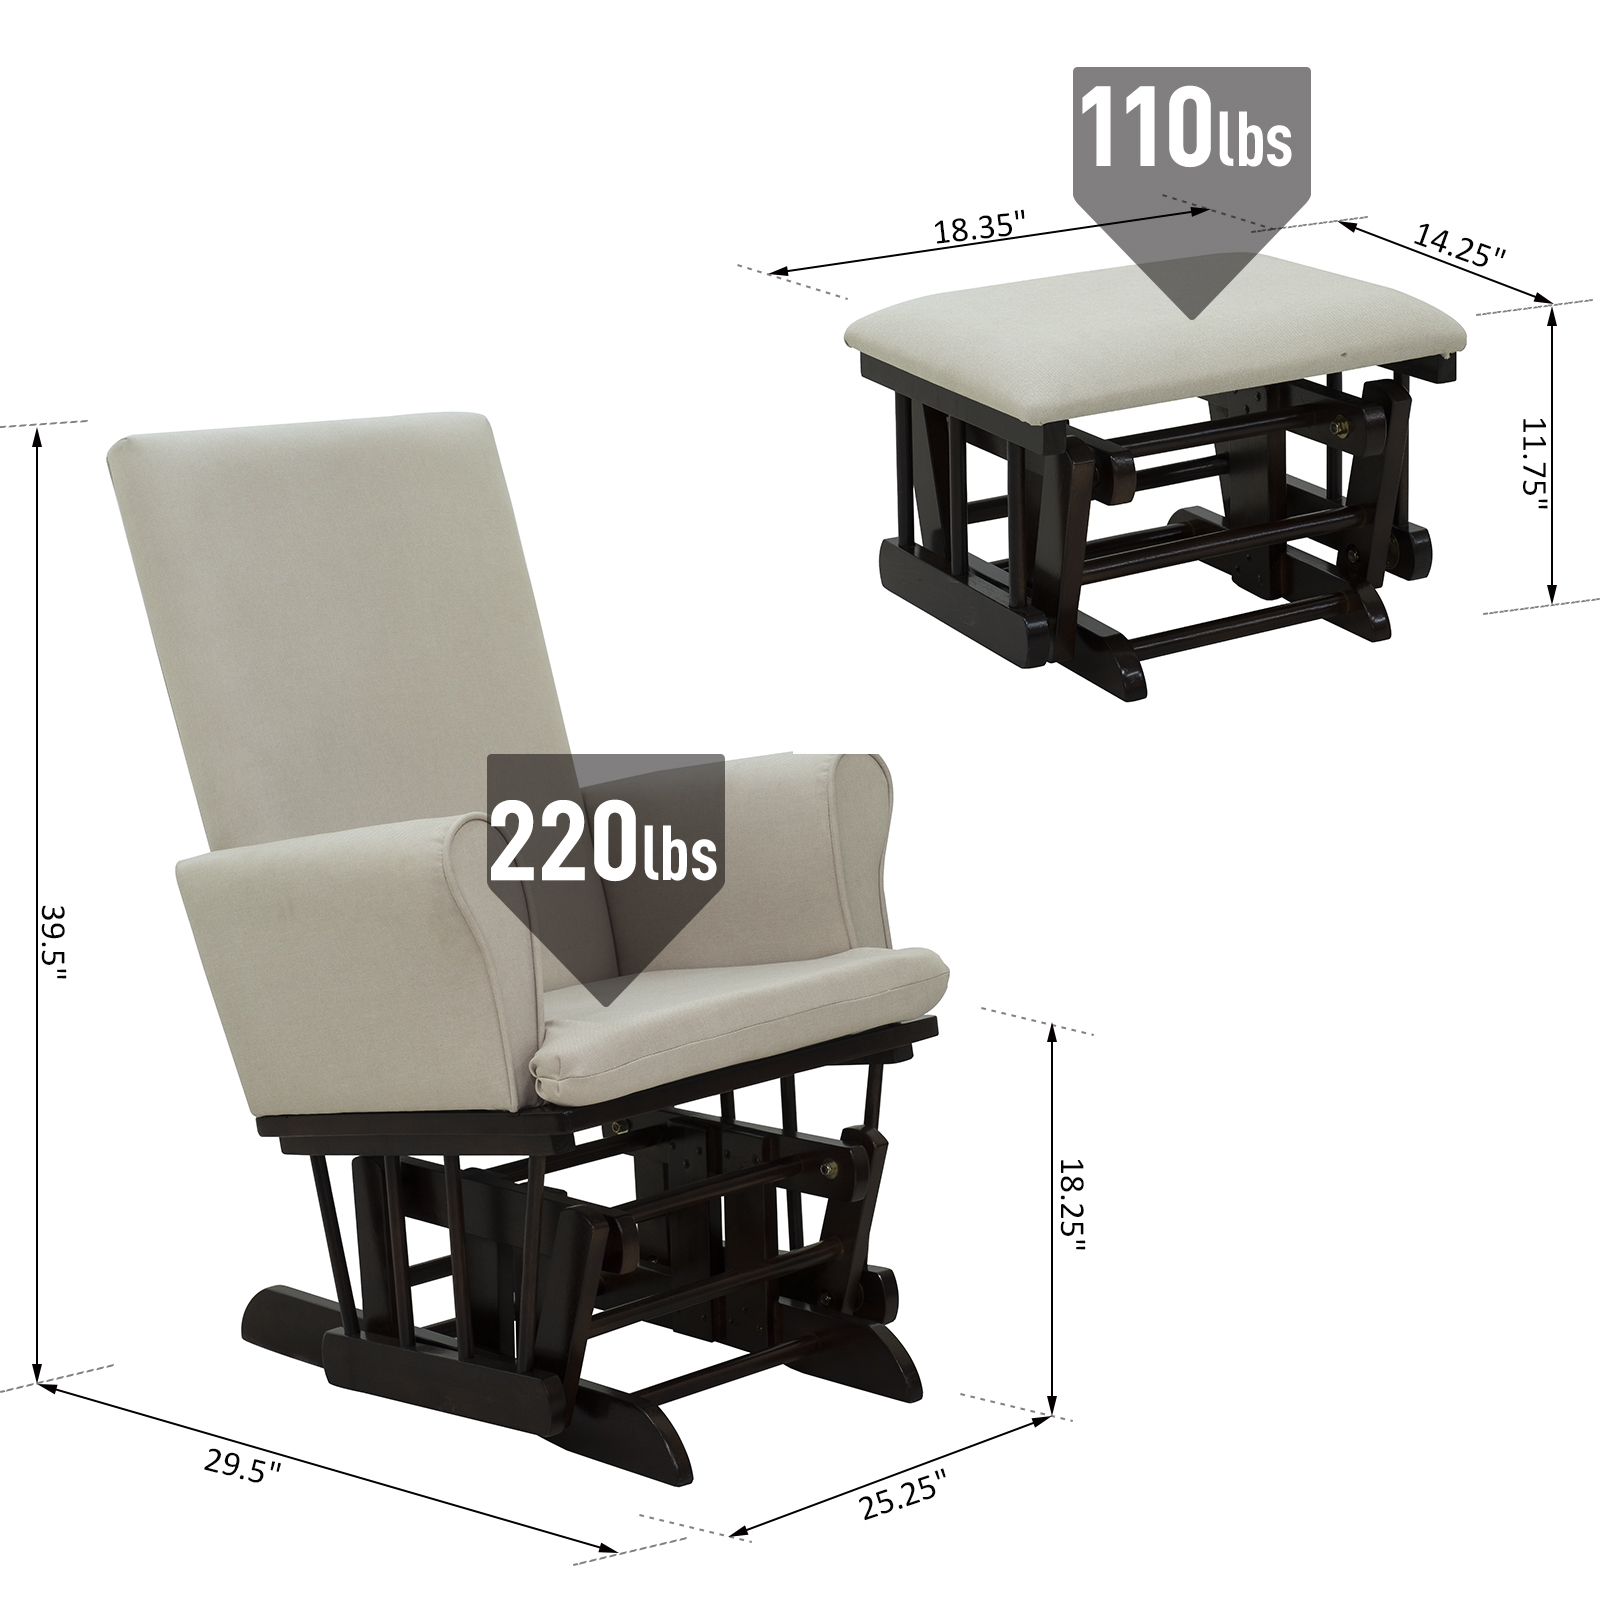 Outstanding Details About 2Pc Baby Nursery Relax Rocker Rocking Chair Glider Ottoman Sofa Set Andrewgaddart Wooden Chair Designs For Living Room Andrewgaddartcom